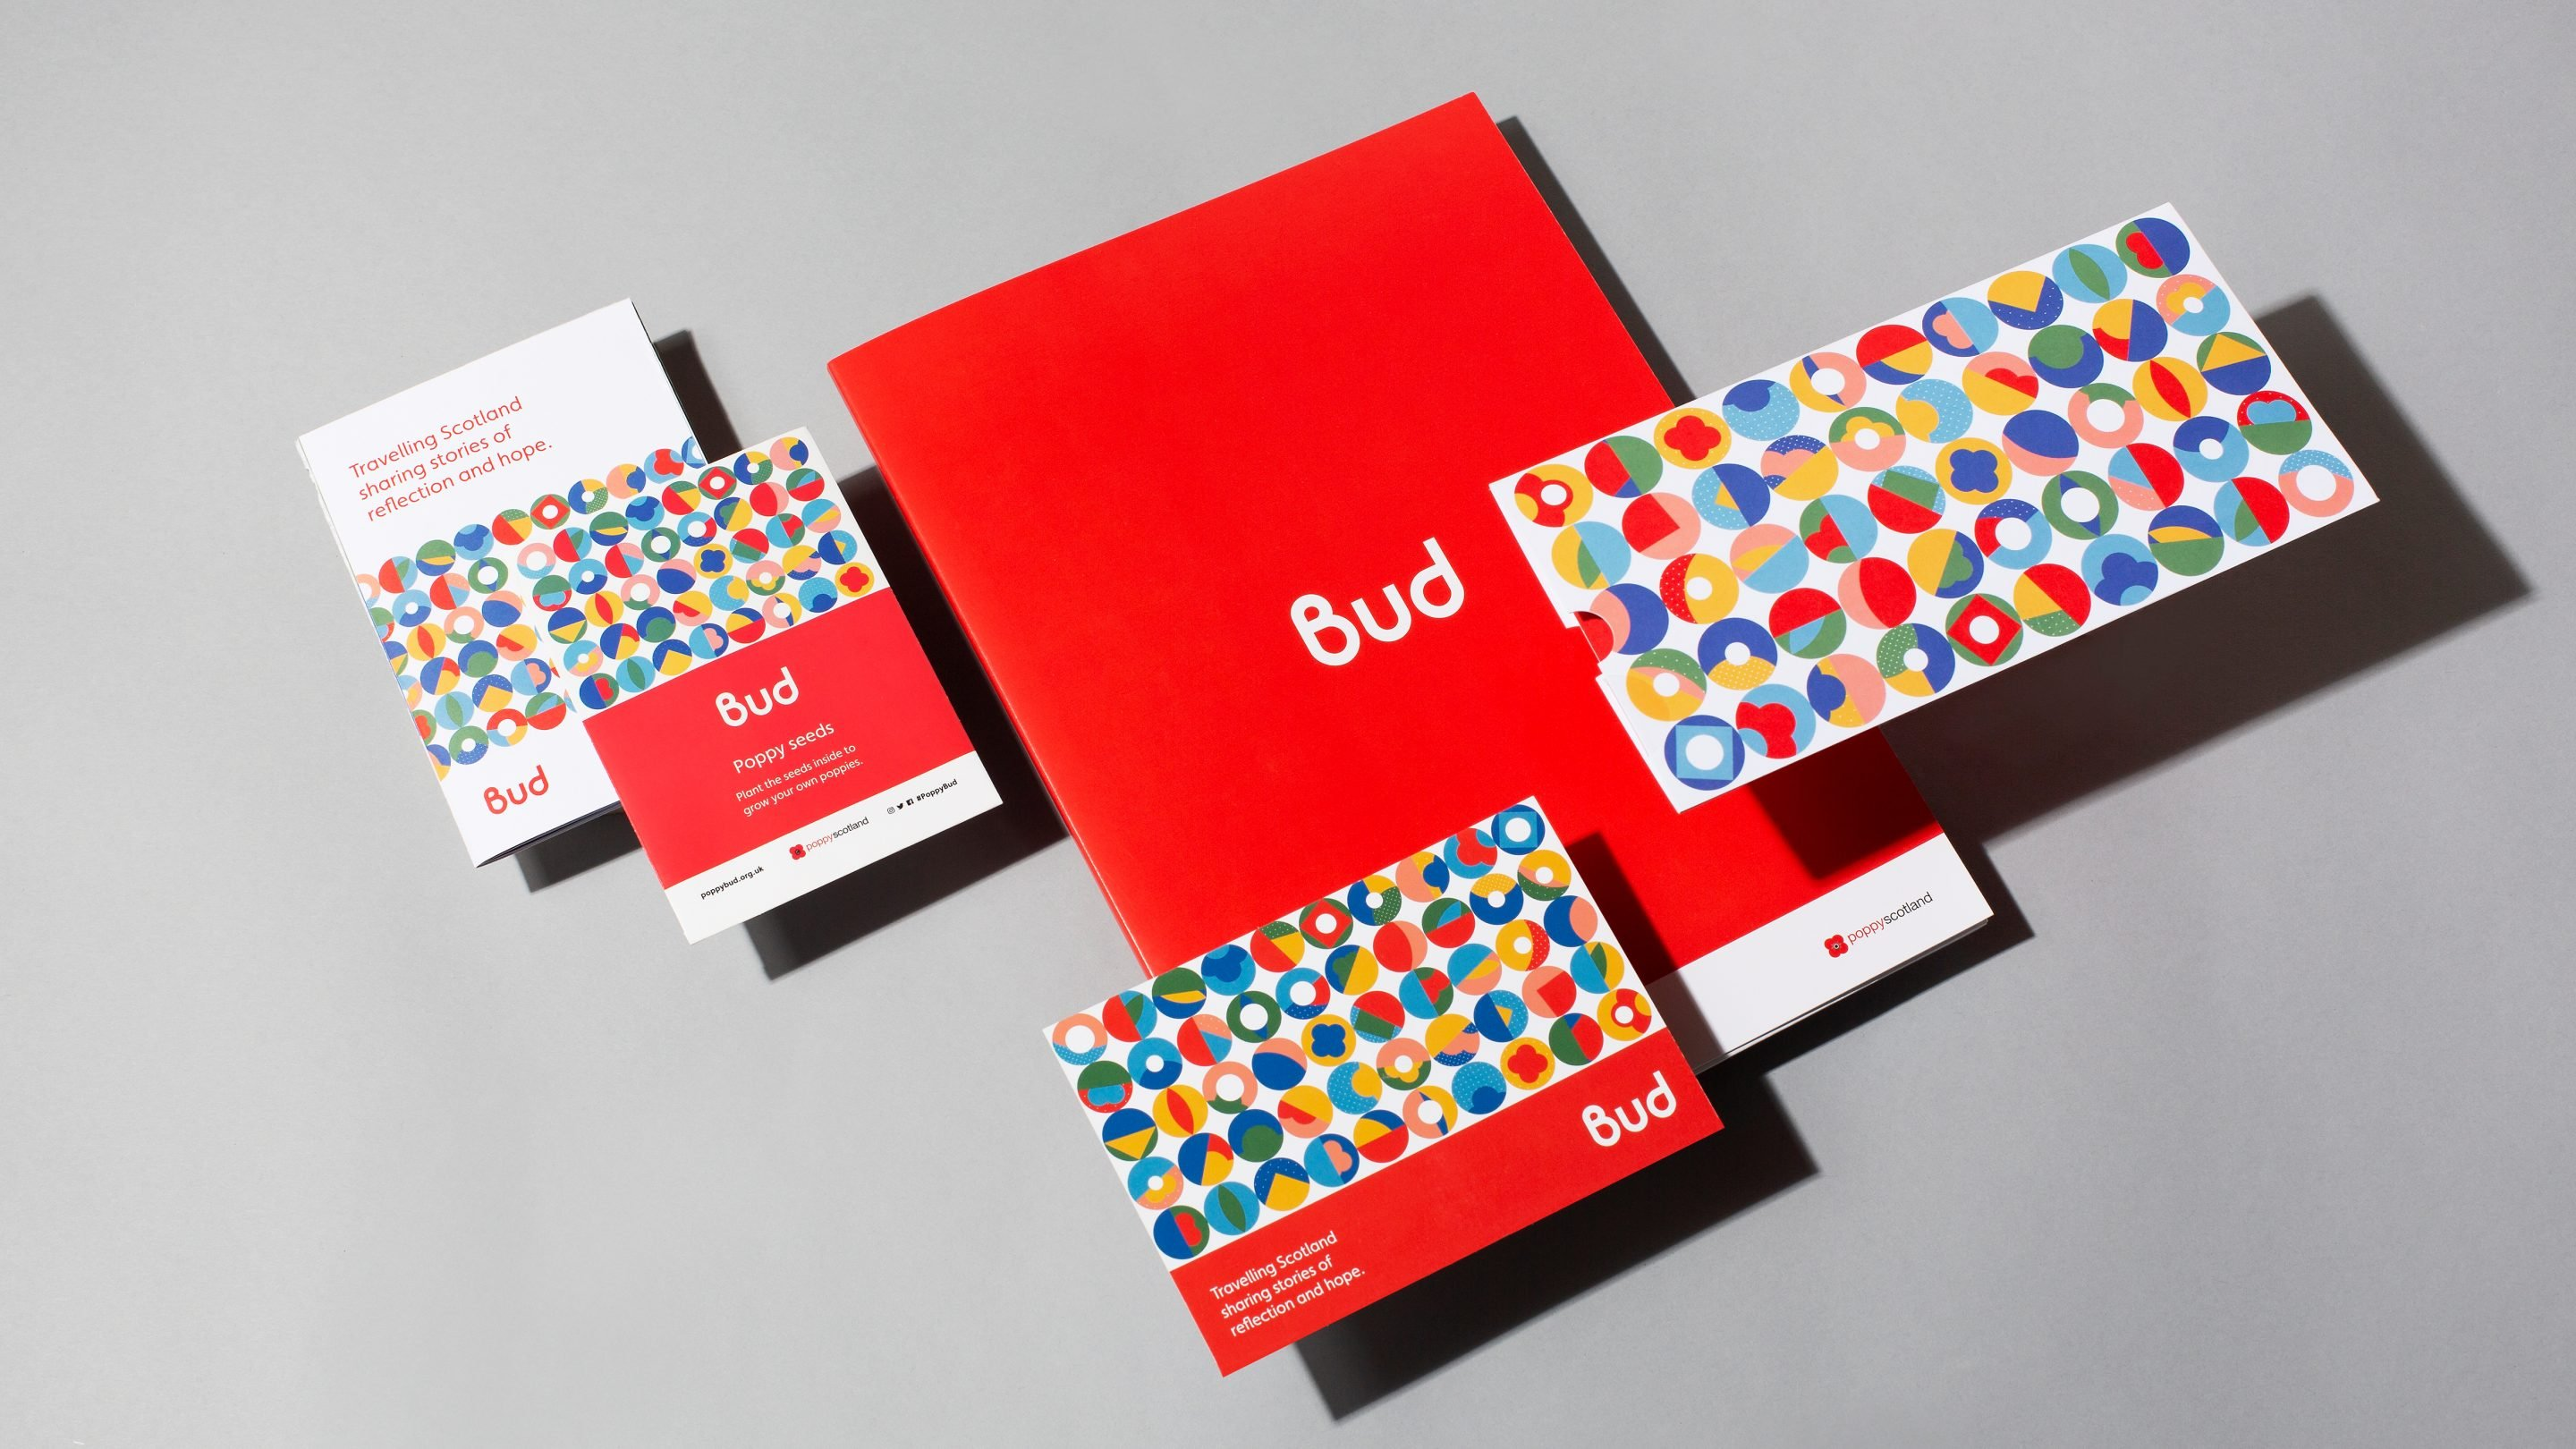 Bud brand collateral